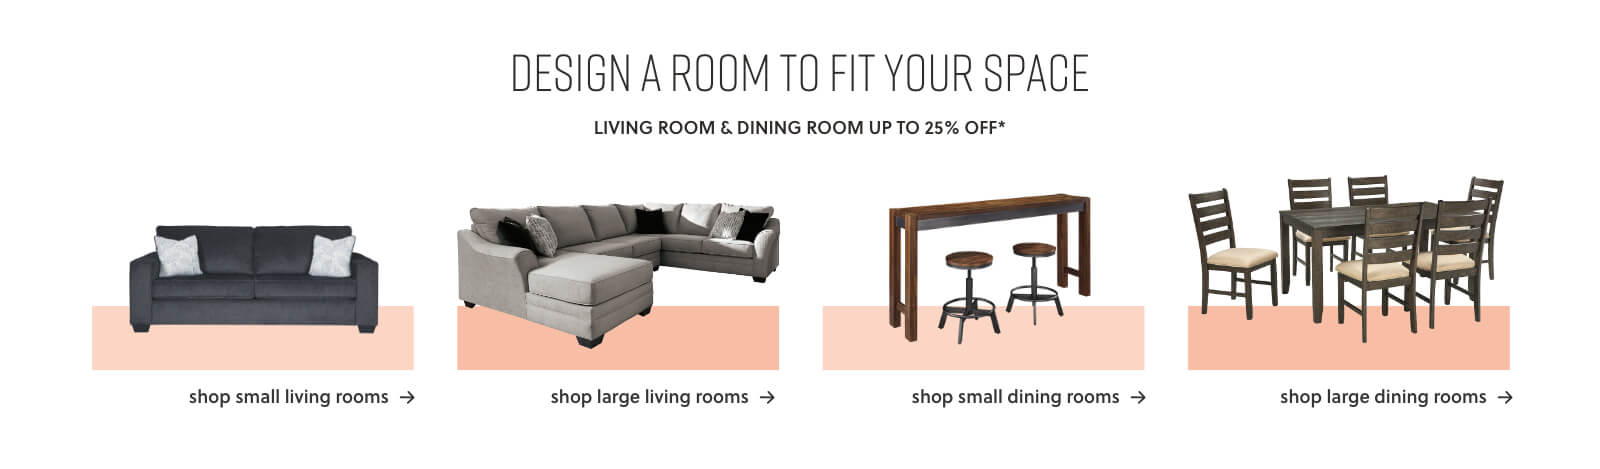 small space living room large space living room small space dining rooms large